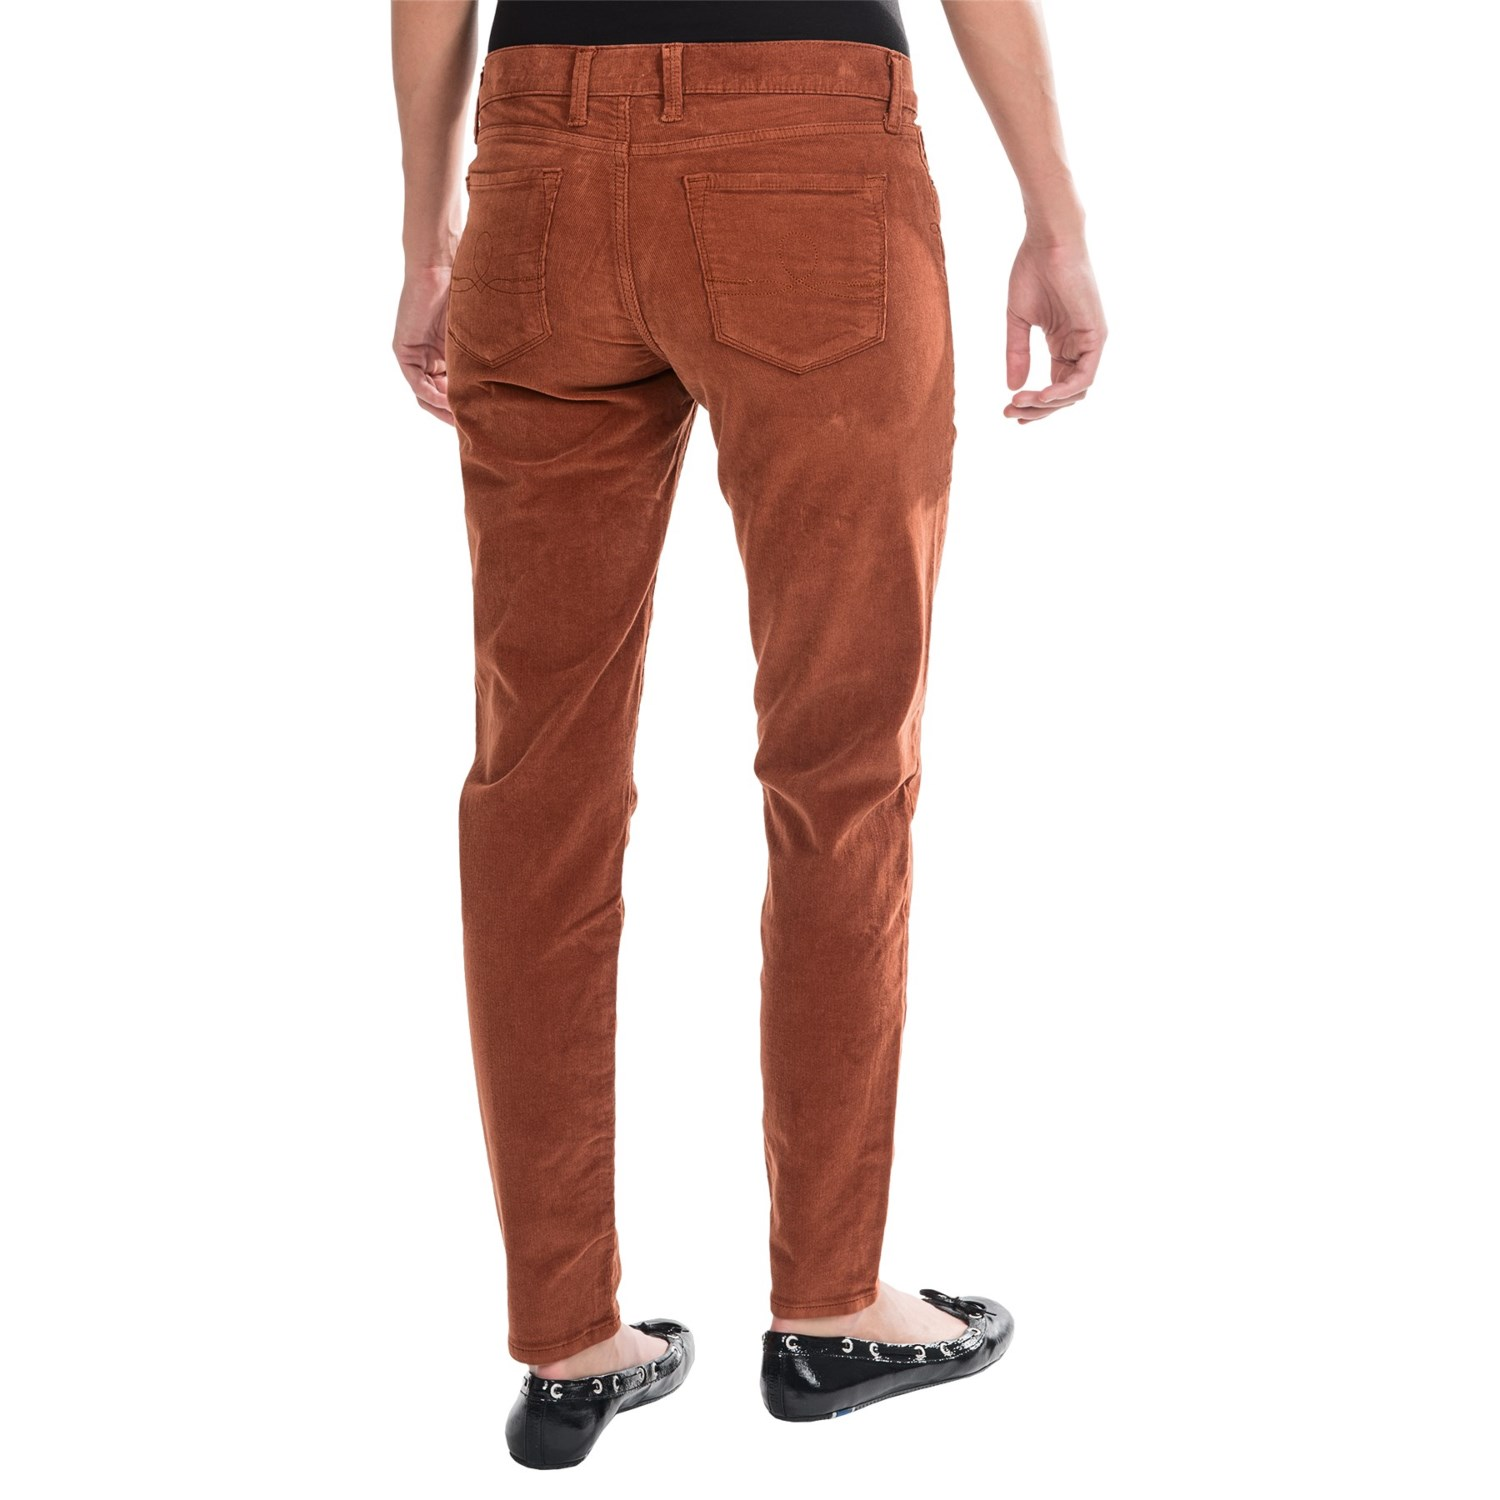 Find great deals on eBay for corduroy pants women. Shop with confidence.